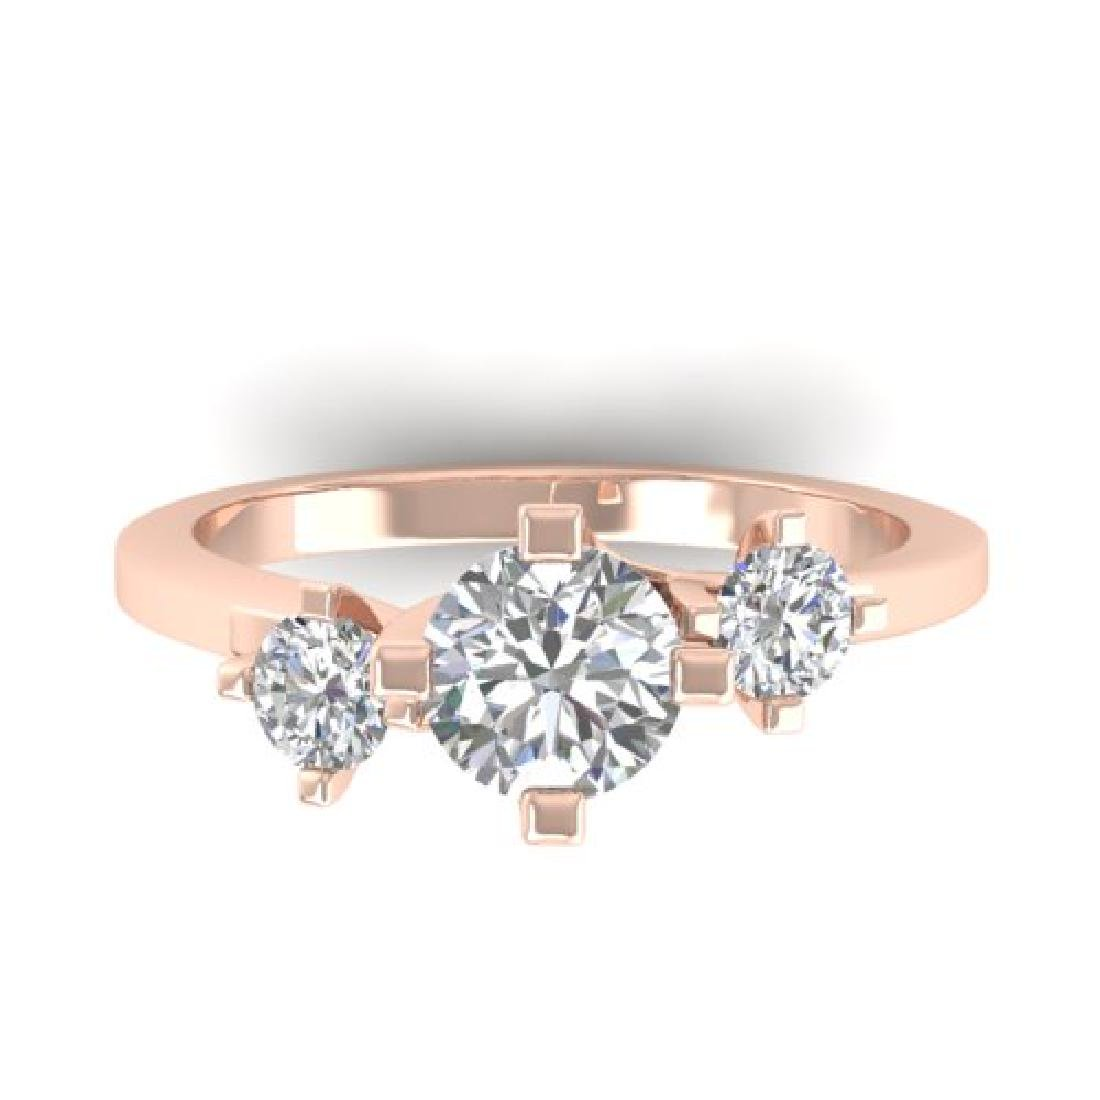 1.25 CTW Certified VS/SI Diamond Solitaire 3 Stone Ring